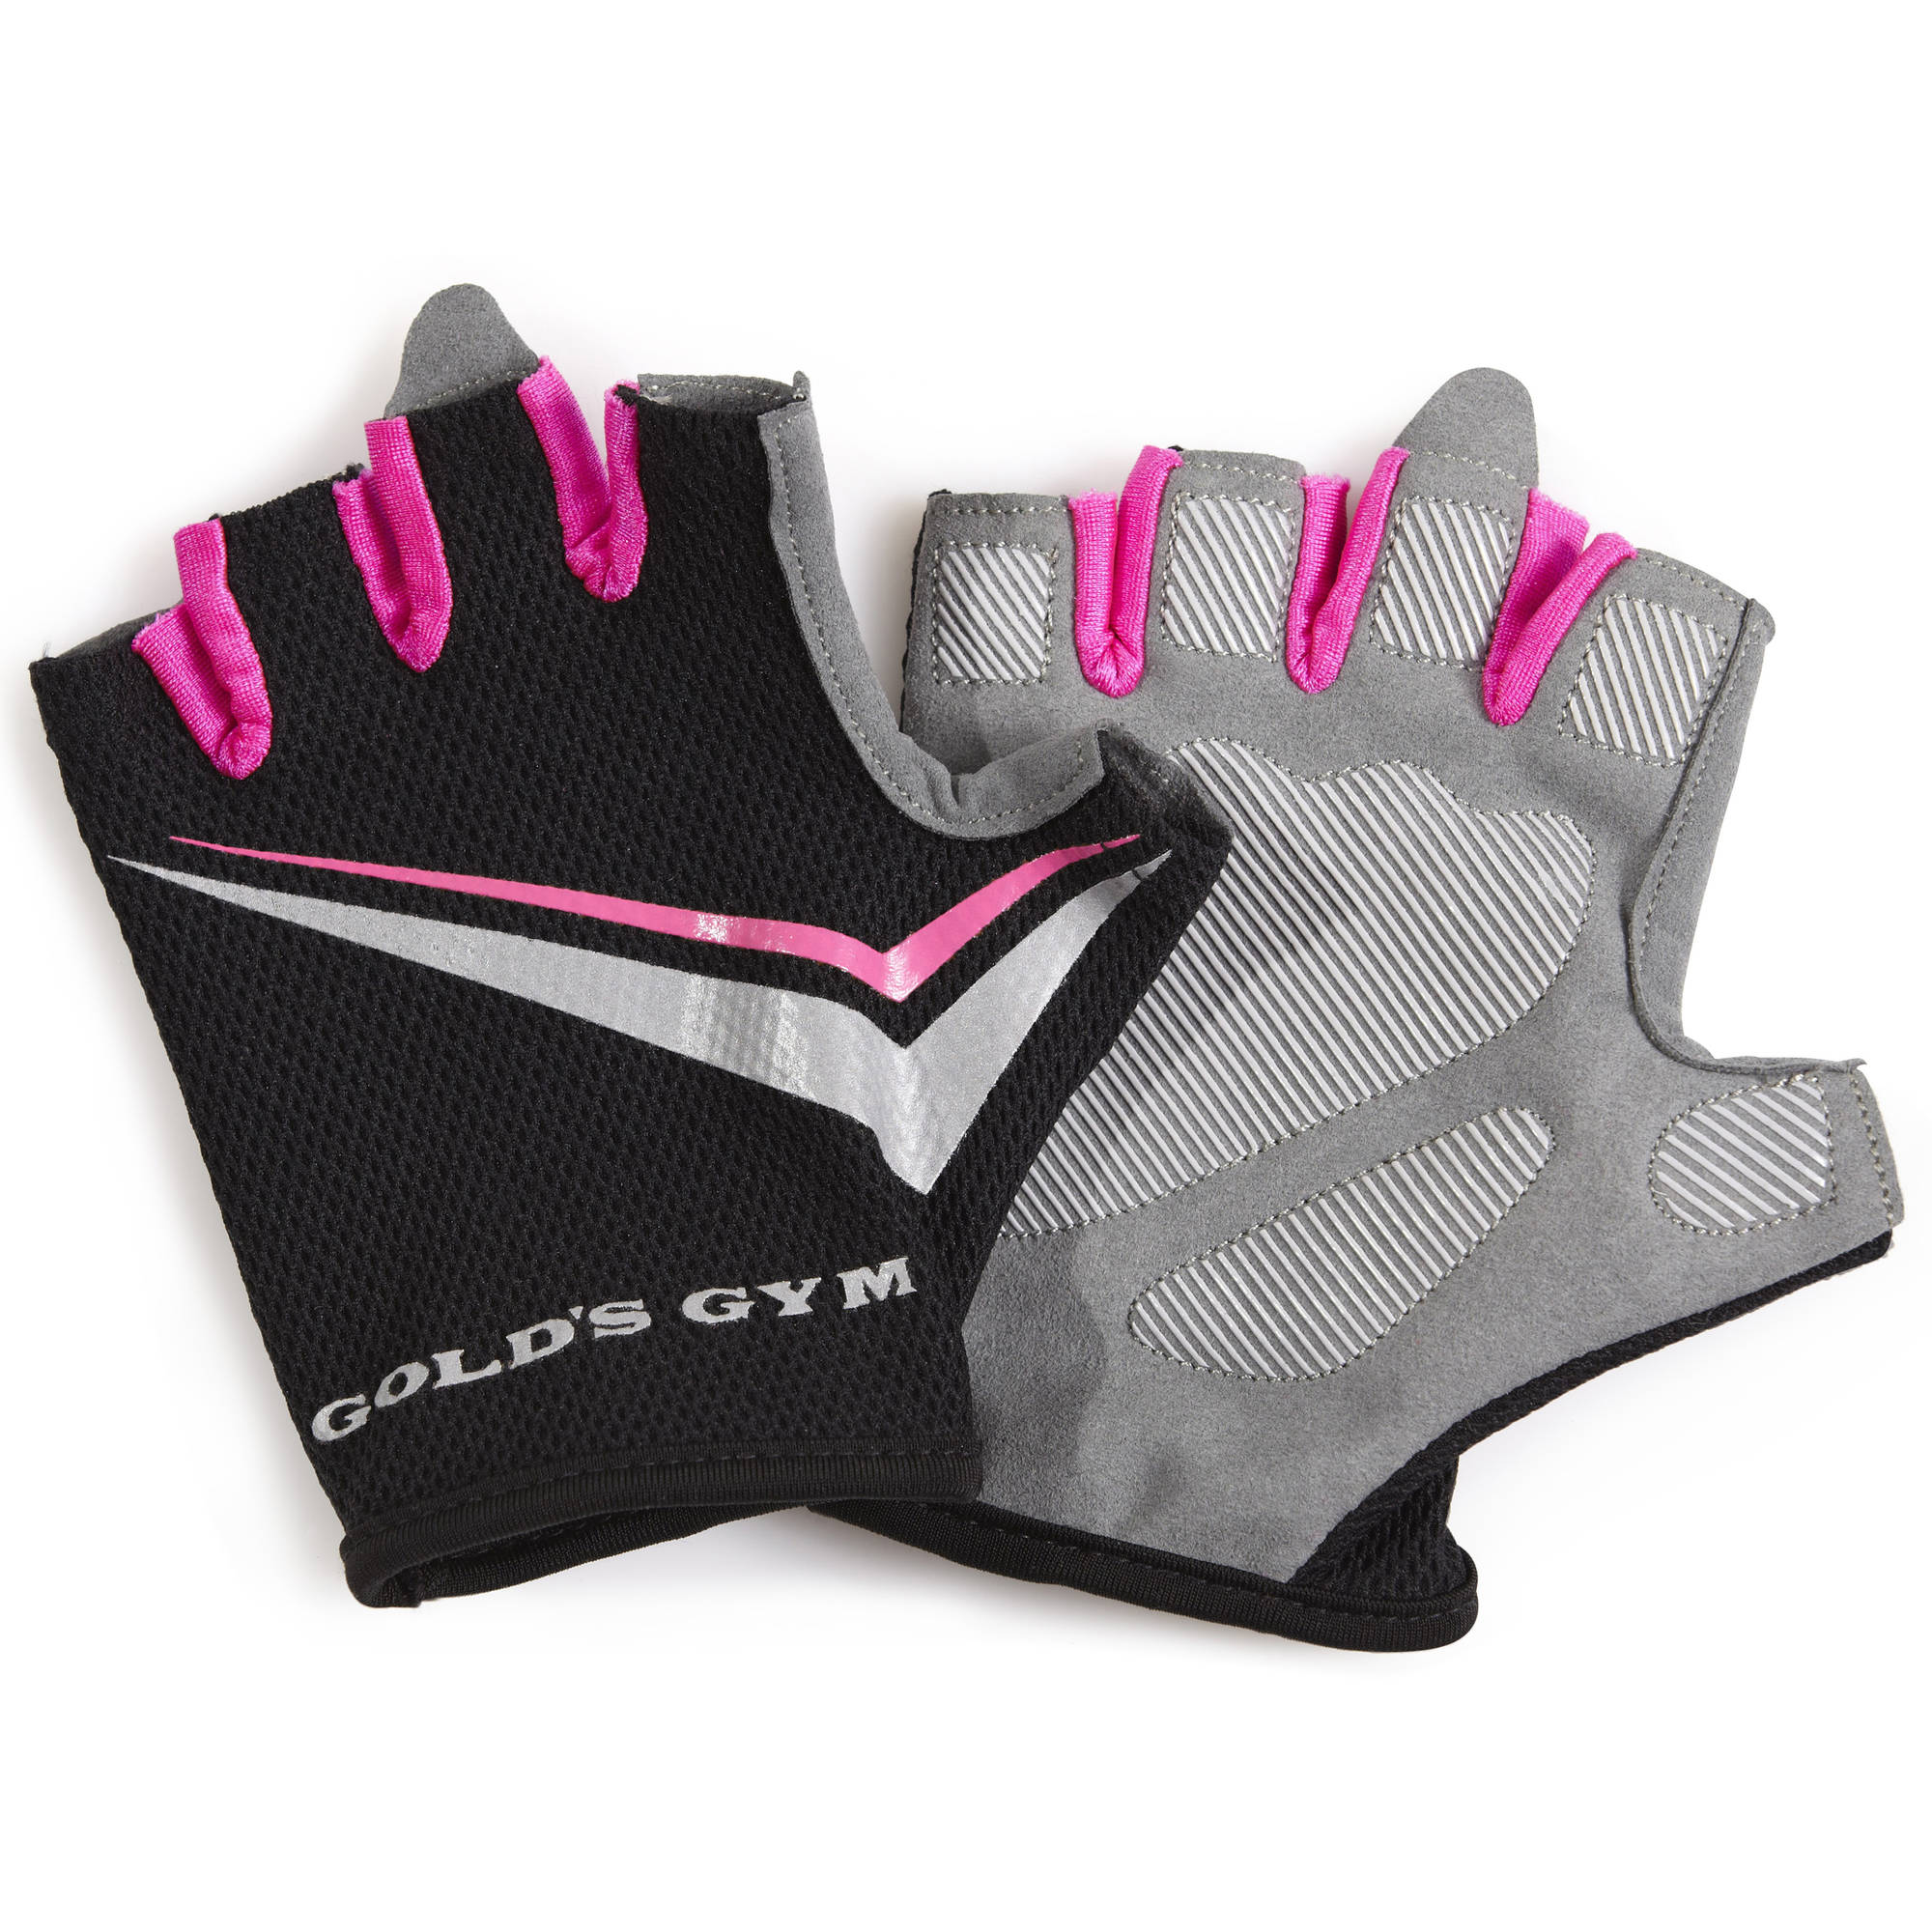 Gold's Gym Women's Tacky Gloves